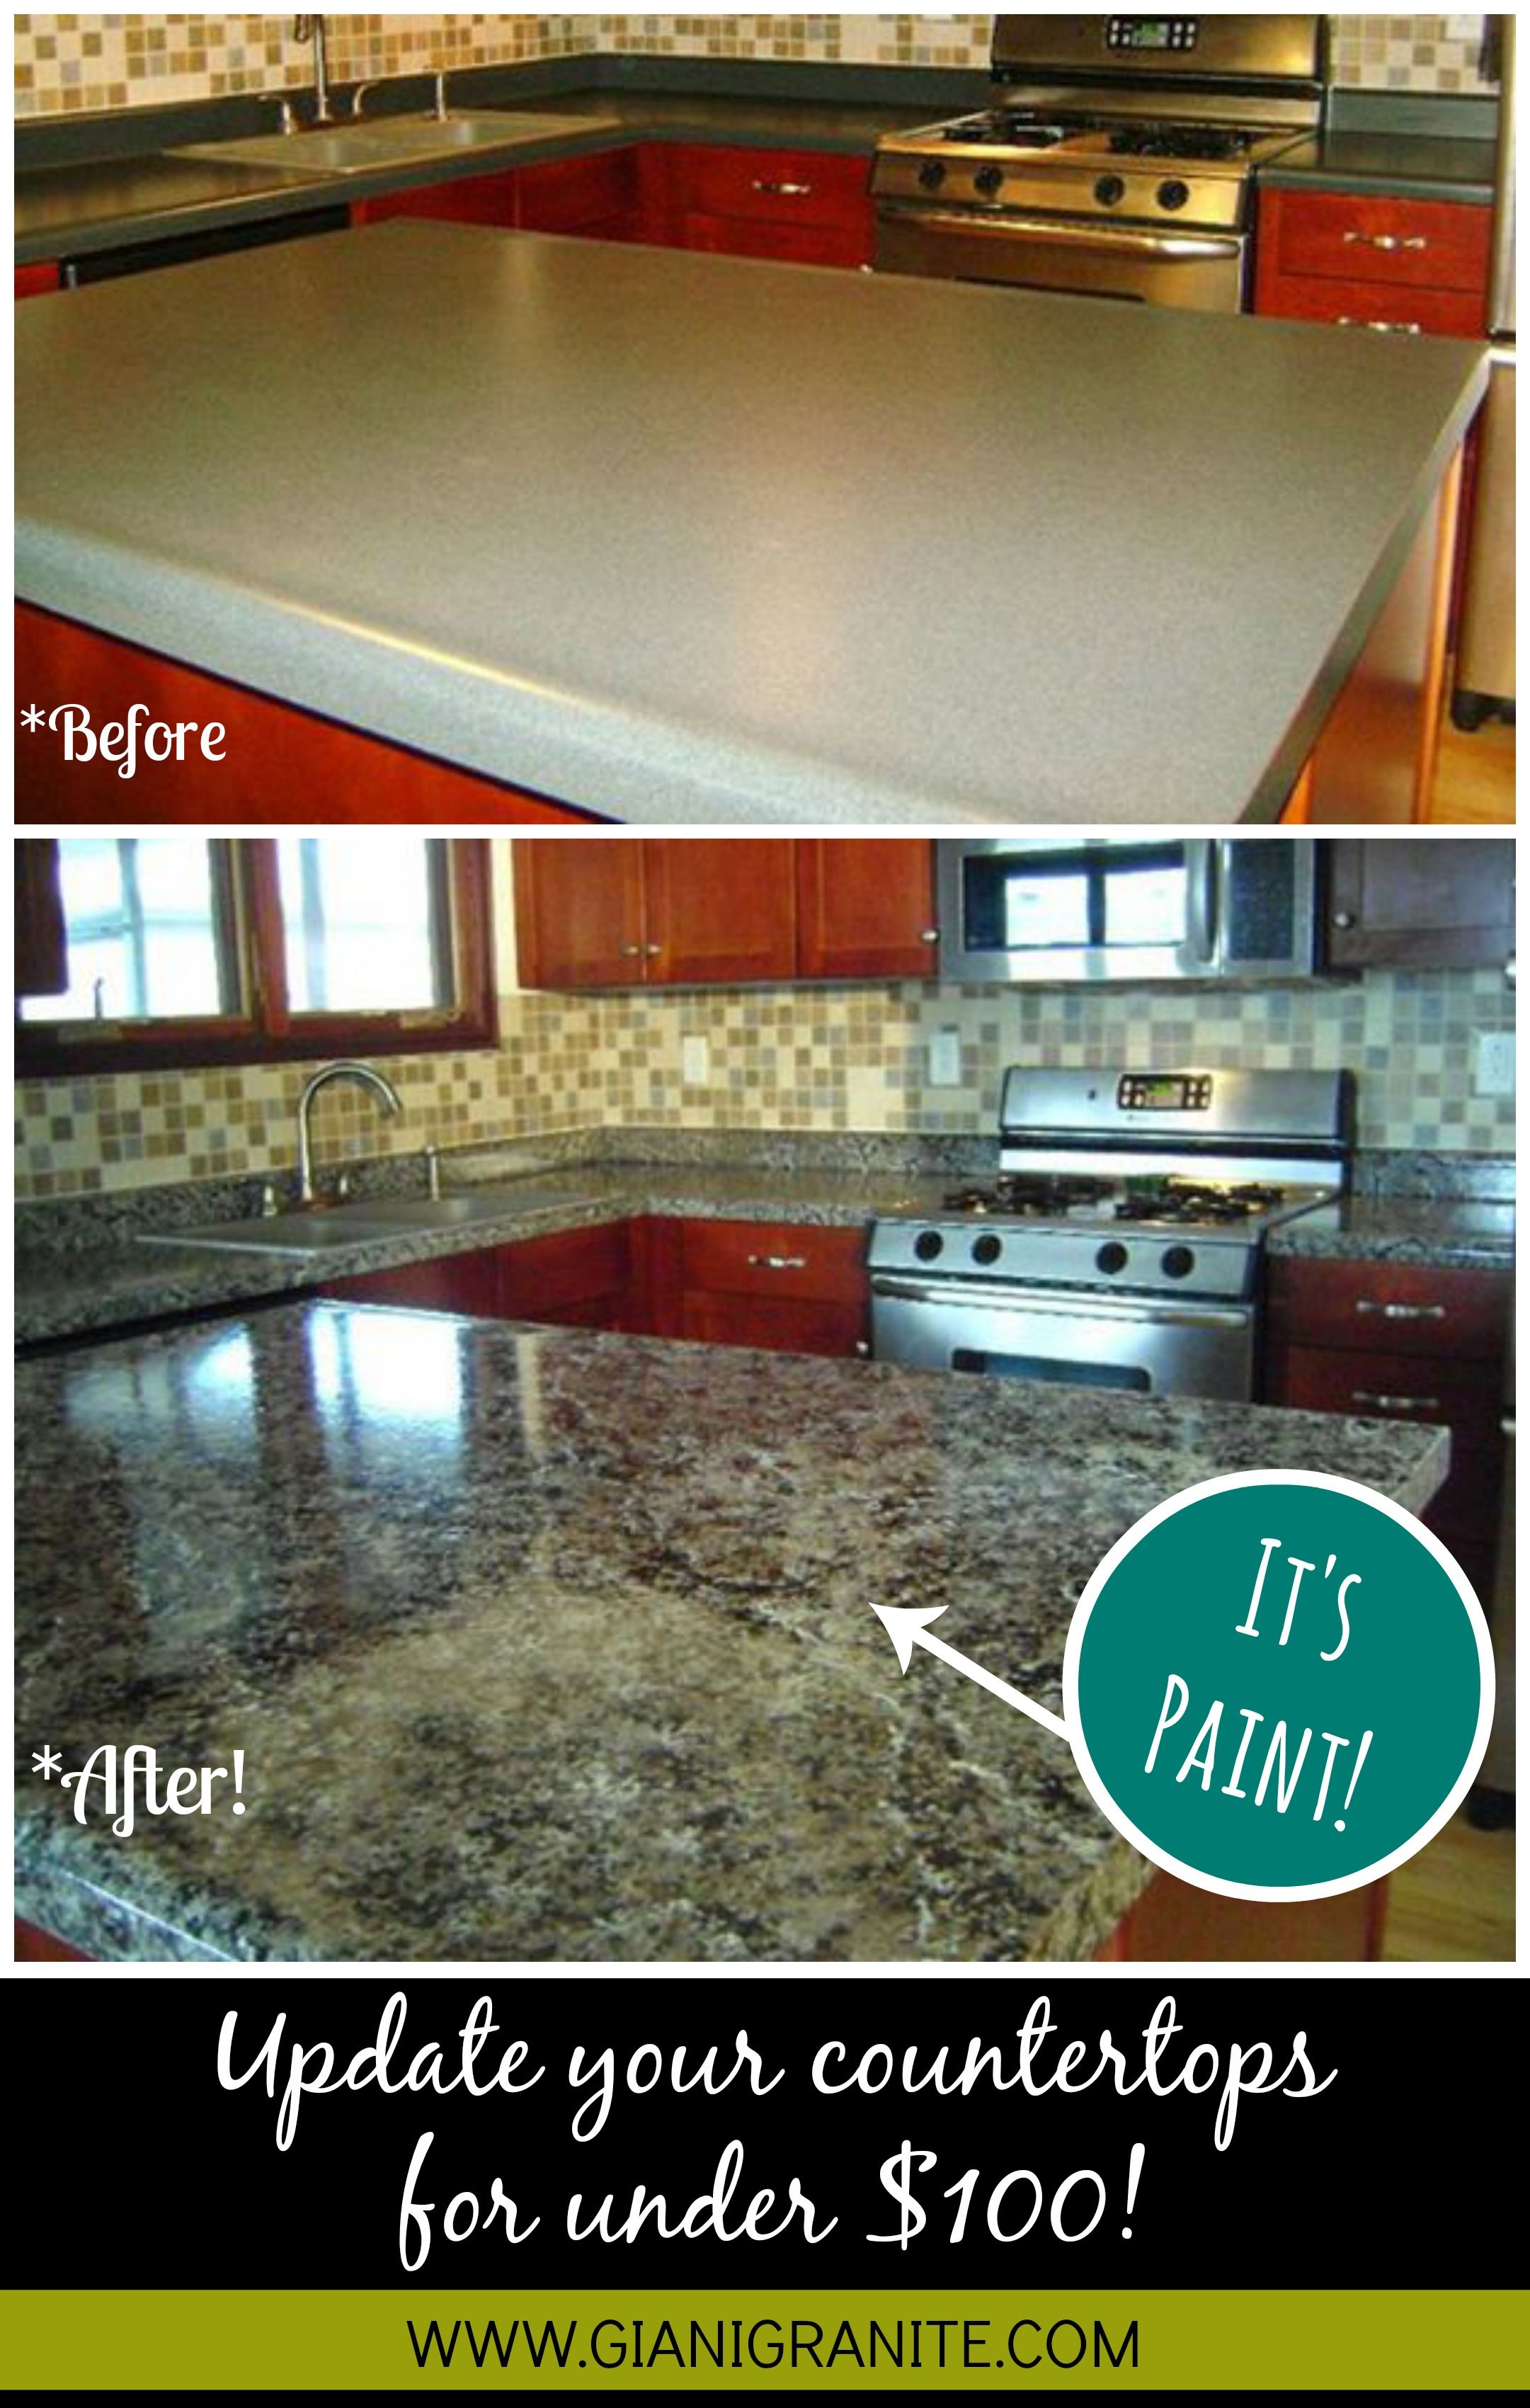 Paint Kitchen Countertops To Look Like Granite Affordable Countertop Makeover Paint That Looks Like Granite